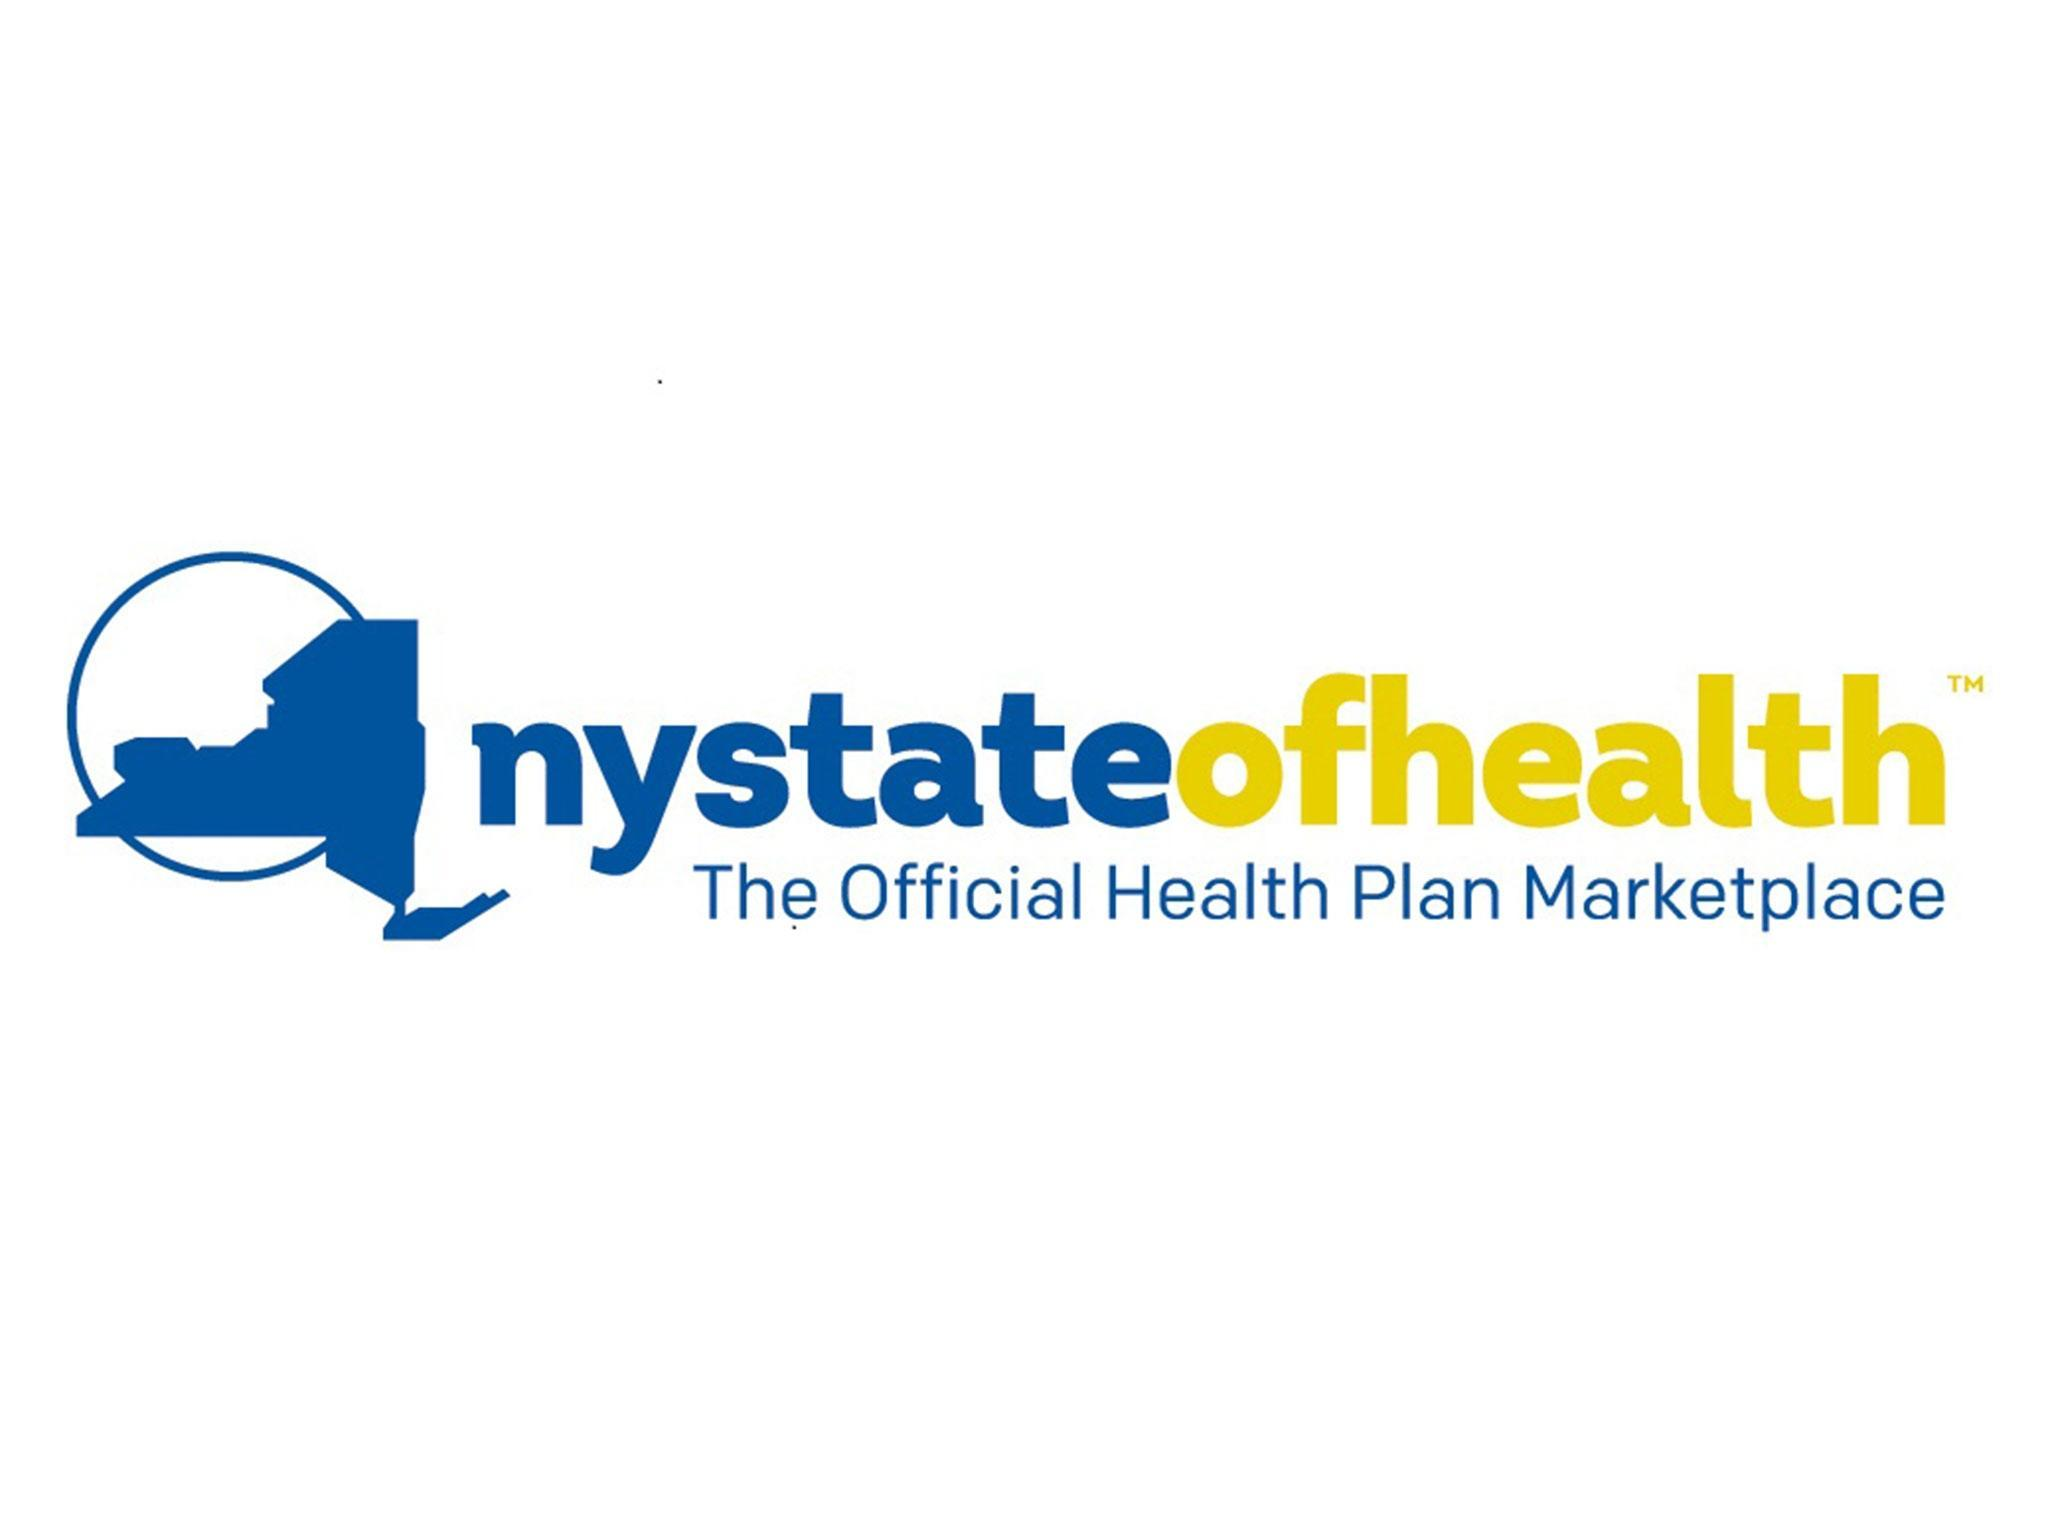 Information about Health Insurance during the COVID-19 Outbreak